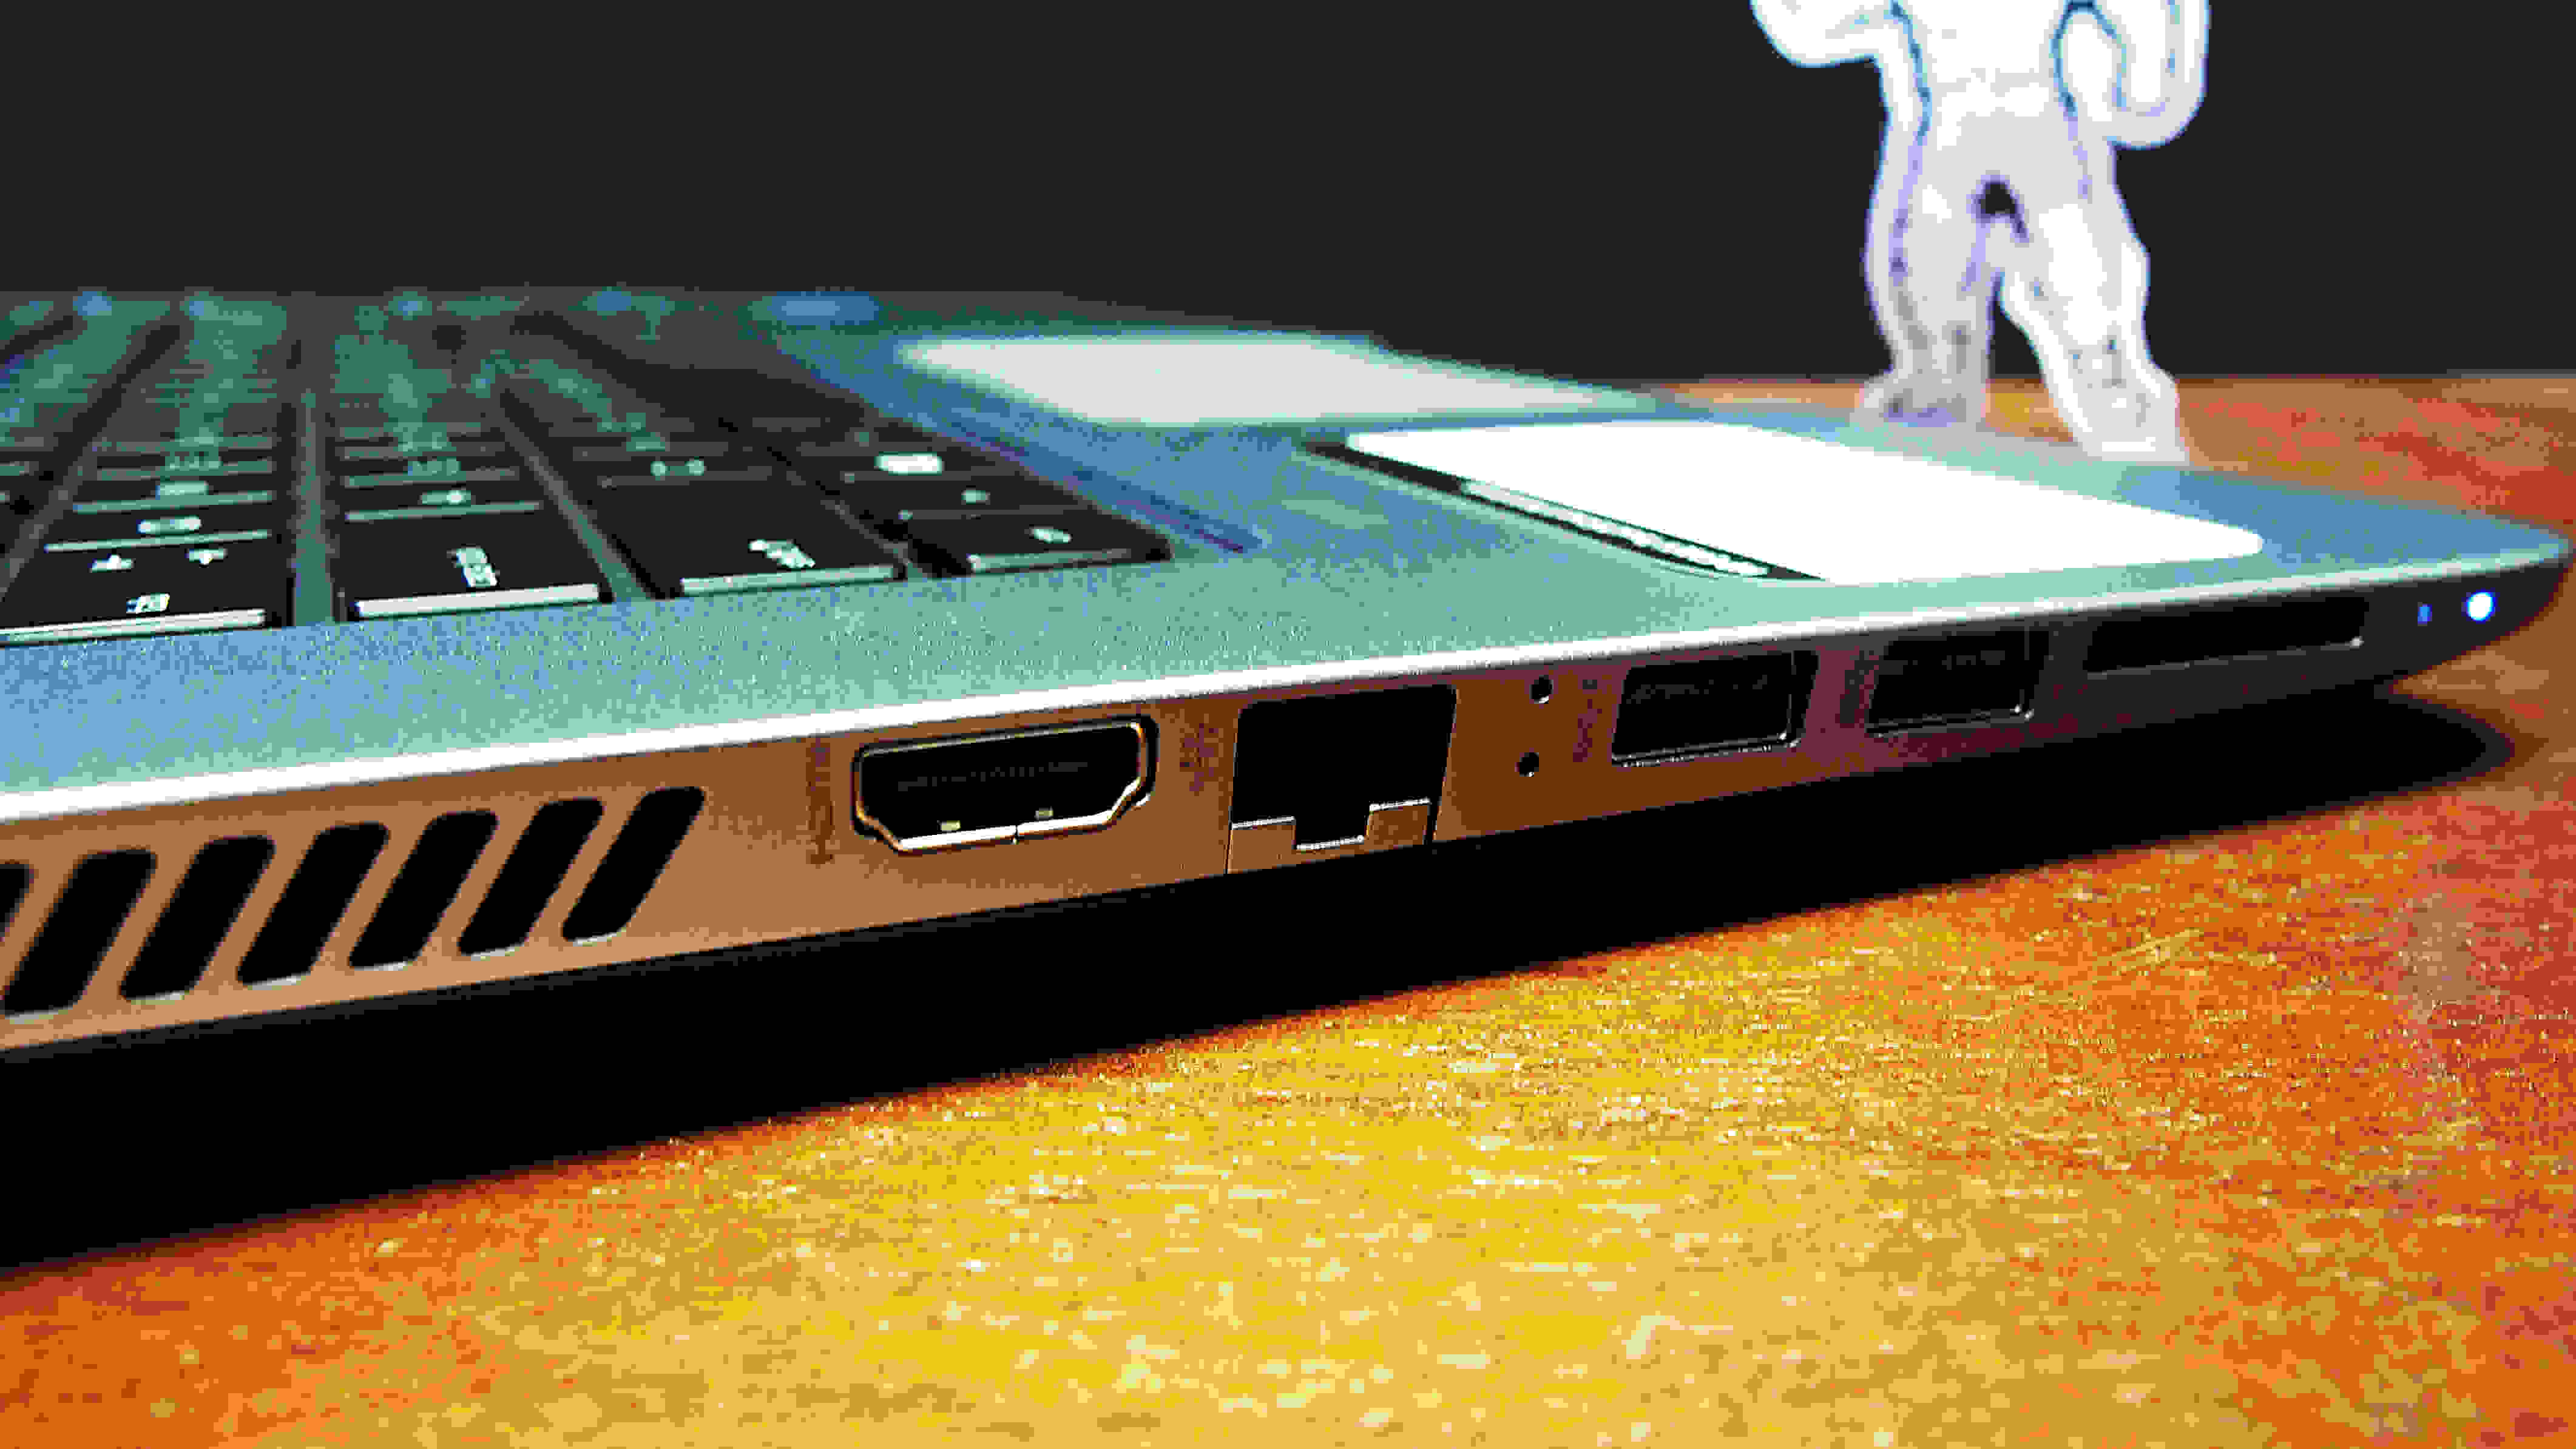 The left side of the 17-inch HP Envy includes an HDMI output, an ethernet jack, two USB 3.0 slots, and an SD card reader.